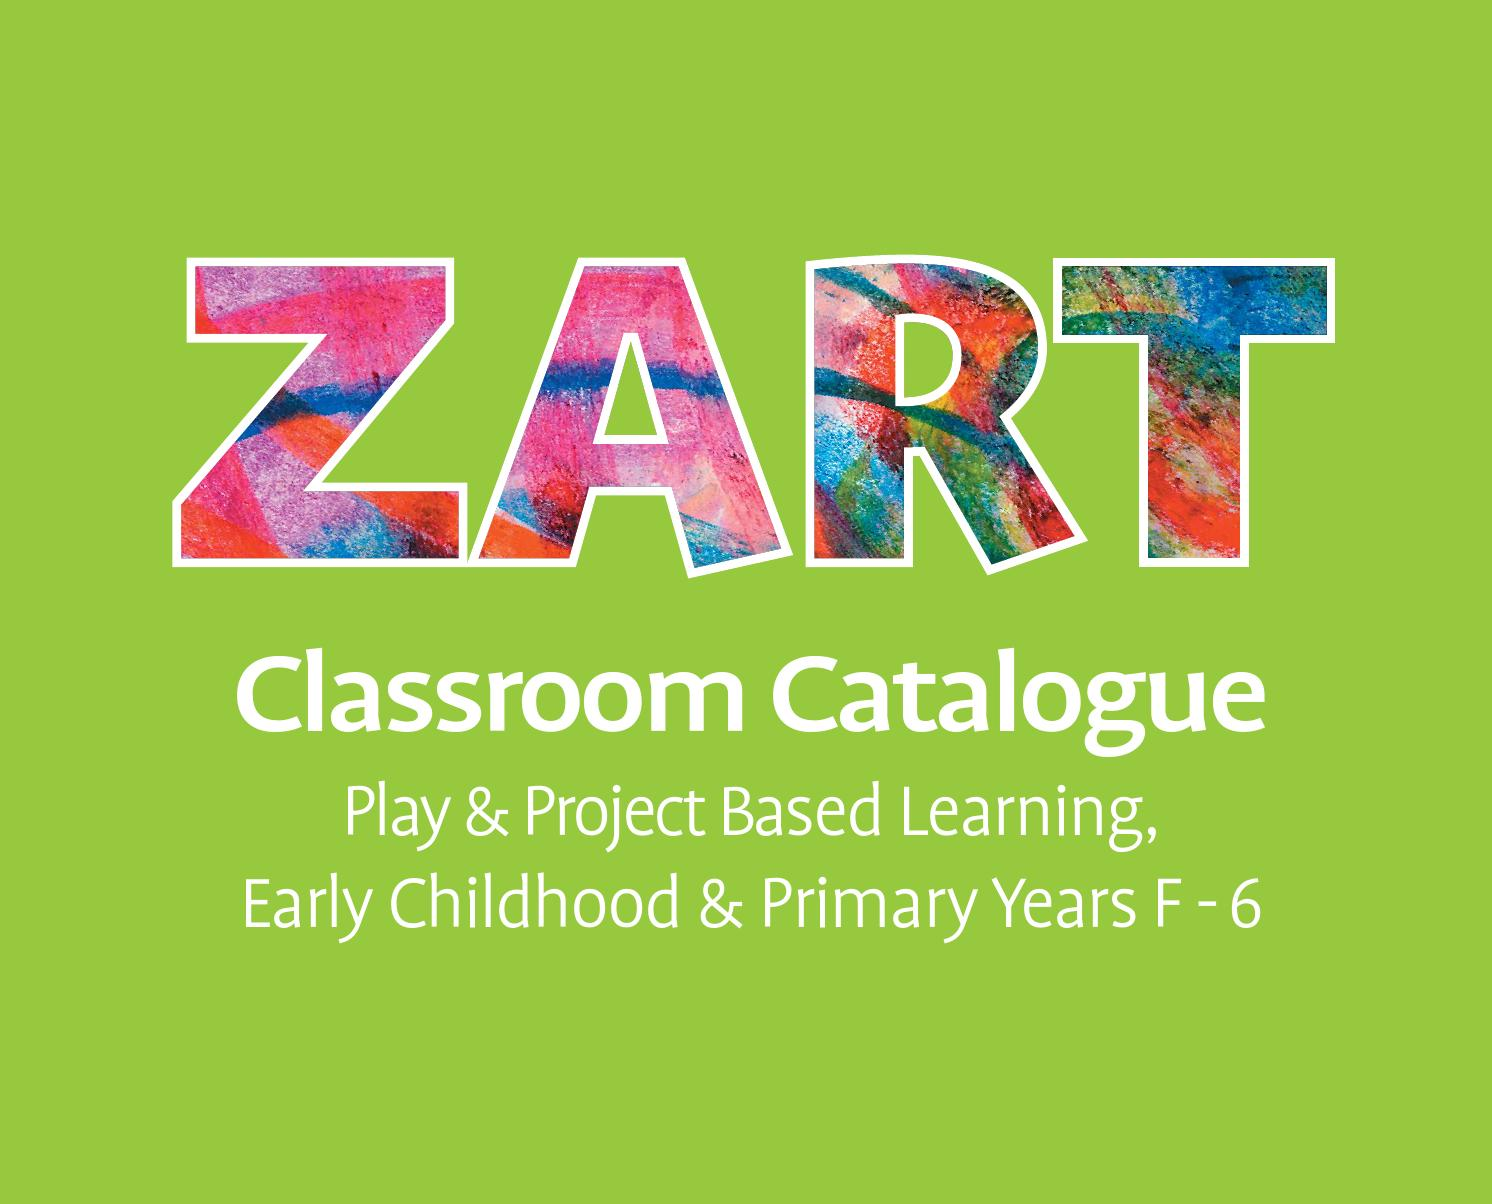 Zart Classroom Catalogue 2016 by Zart : Art, craft and education ...